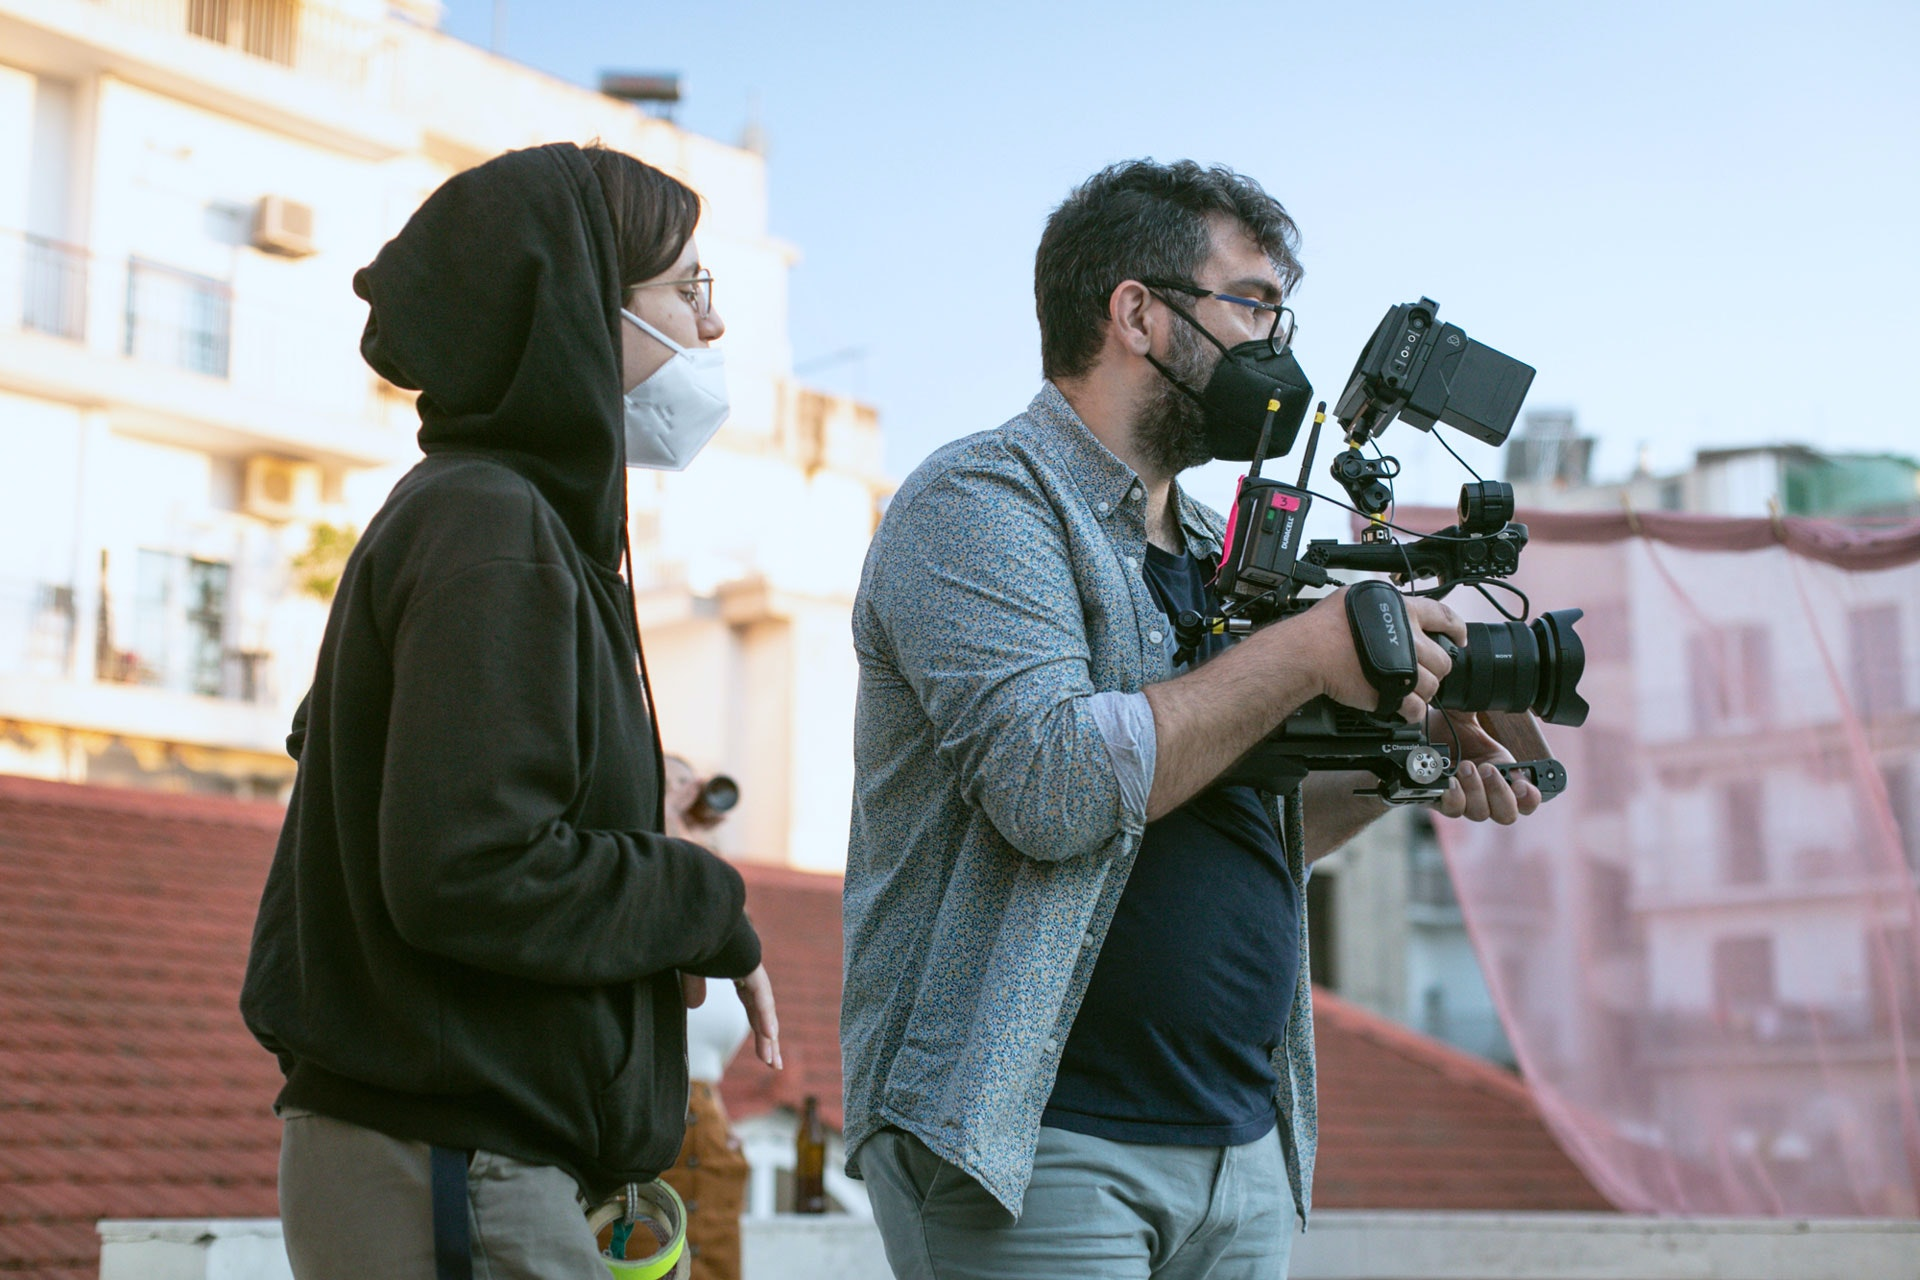 Shooting handheld with FX6 and protected by the magnificent AC Nefeli Ntakozoudi. Photo by Iliana Bennet